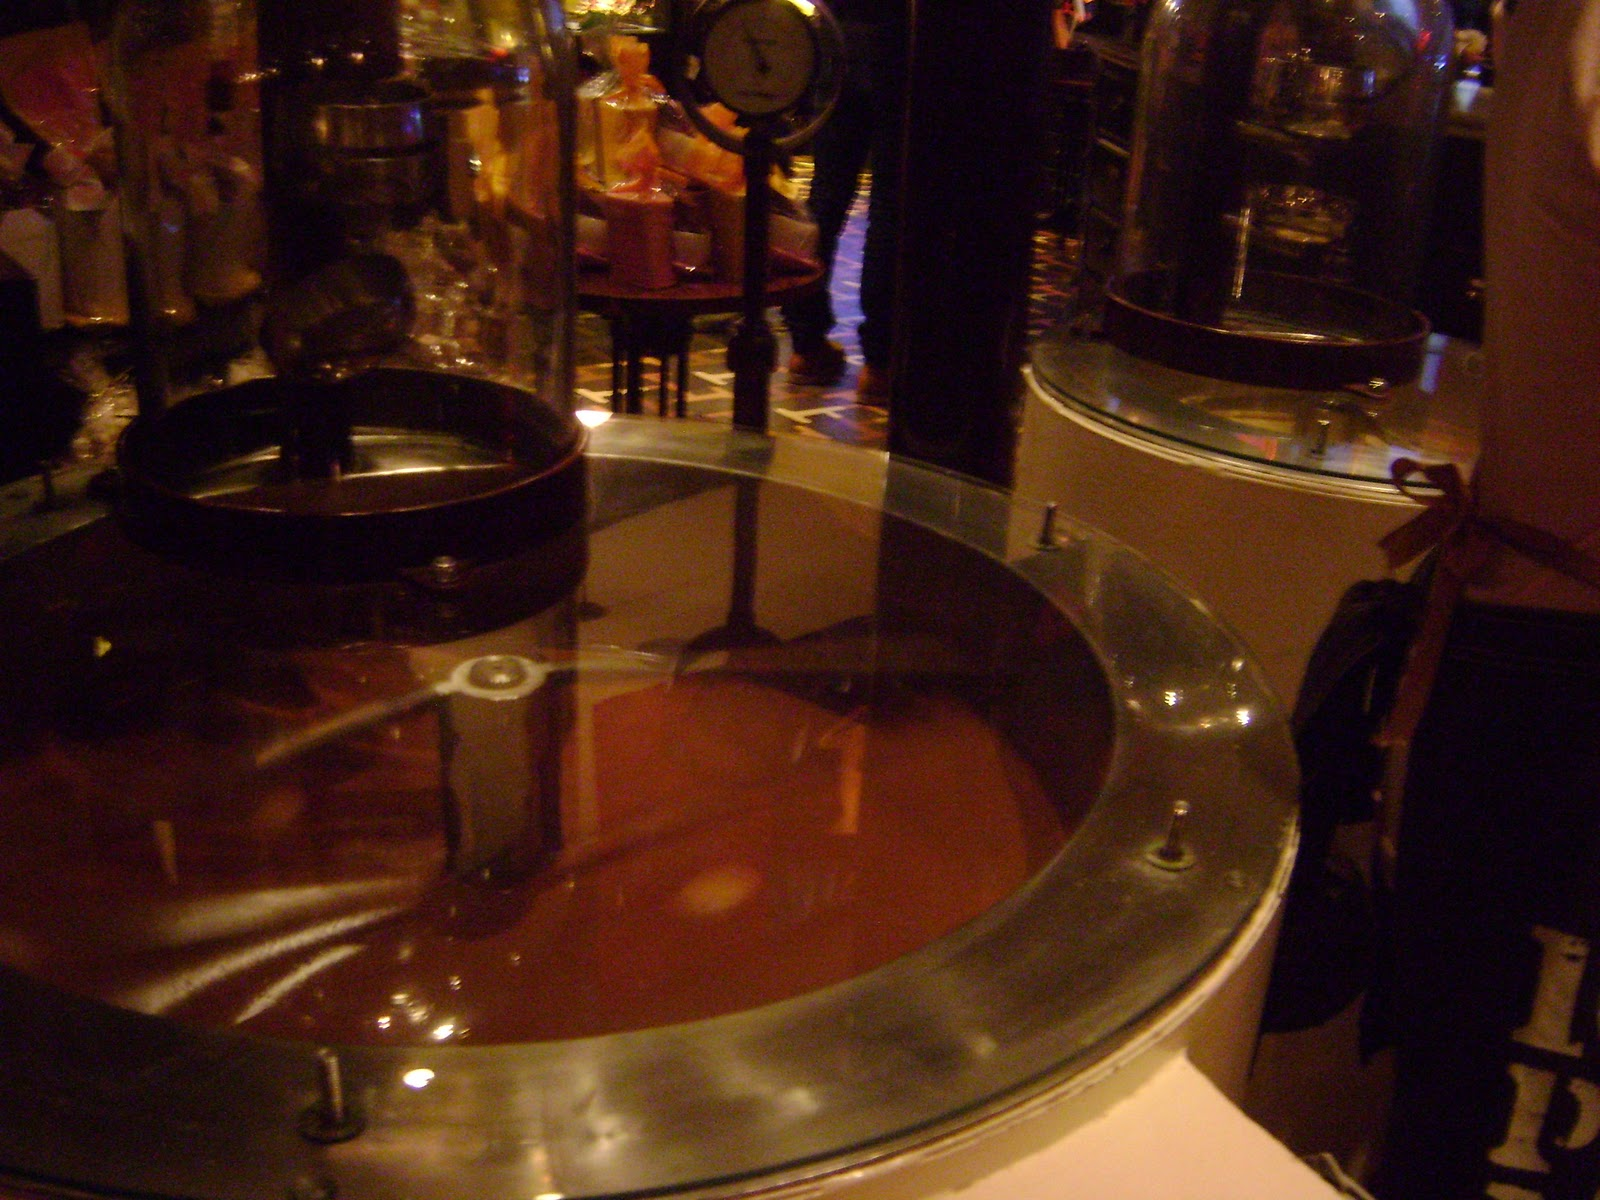 My Life In The Big Apple: Max Brenner - Chocolate by the Bald Man